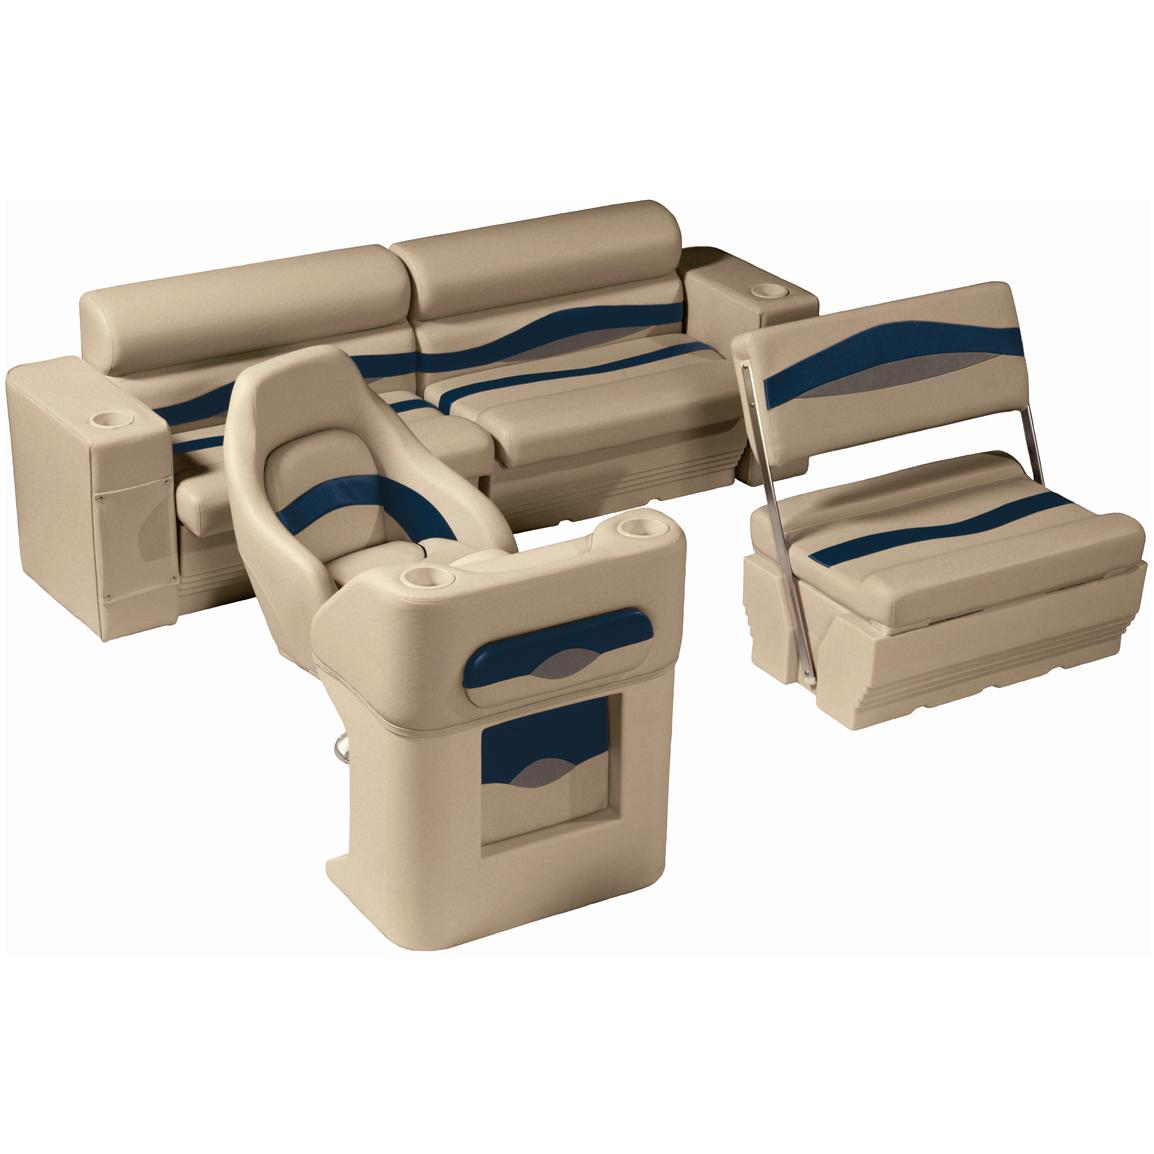 Wise® Premier Pontoon Traditional Rear Seat Group, Color D - Mocha Java Punch / Midnight / Rock Salt